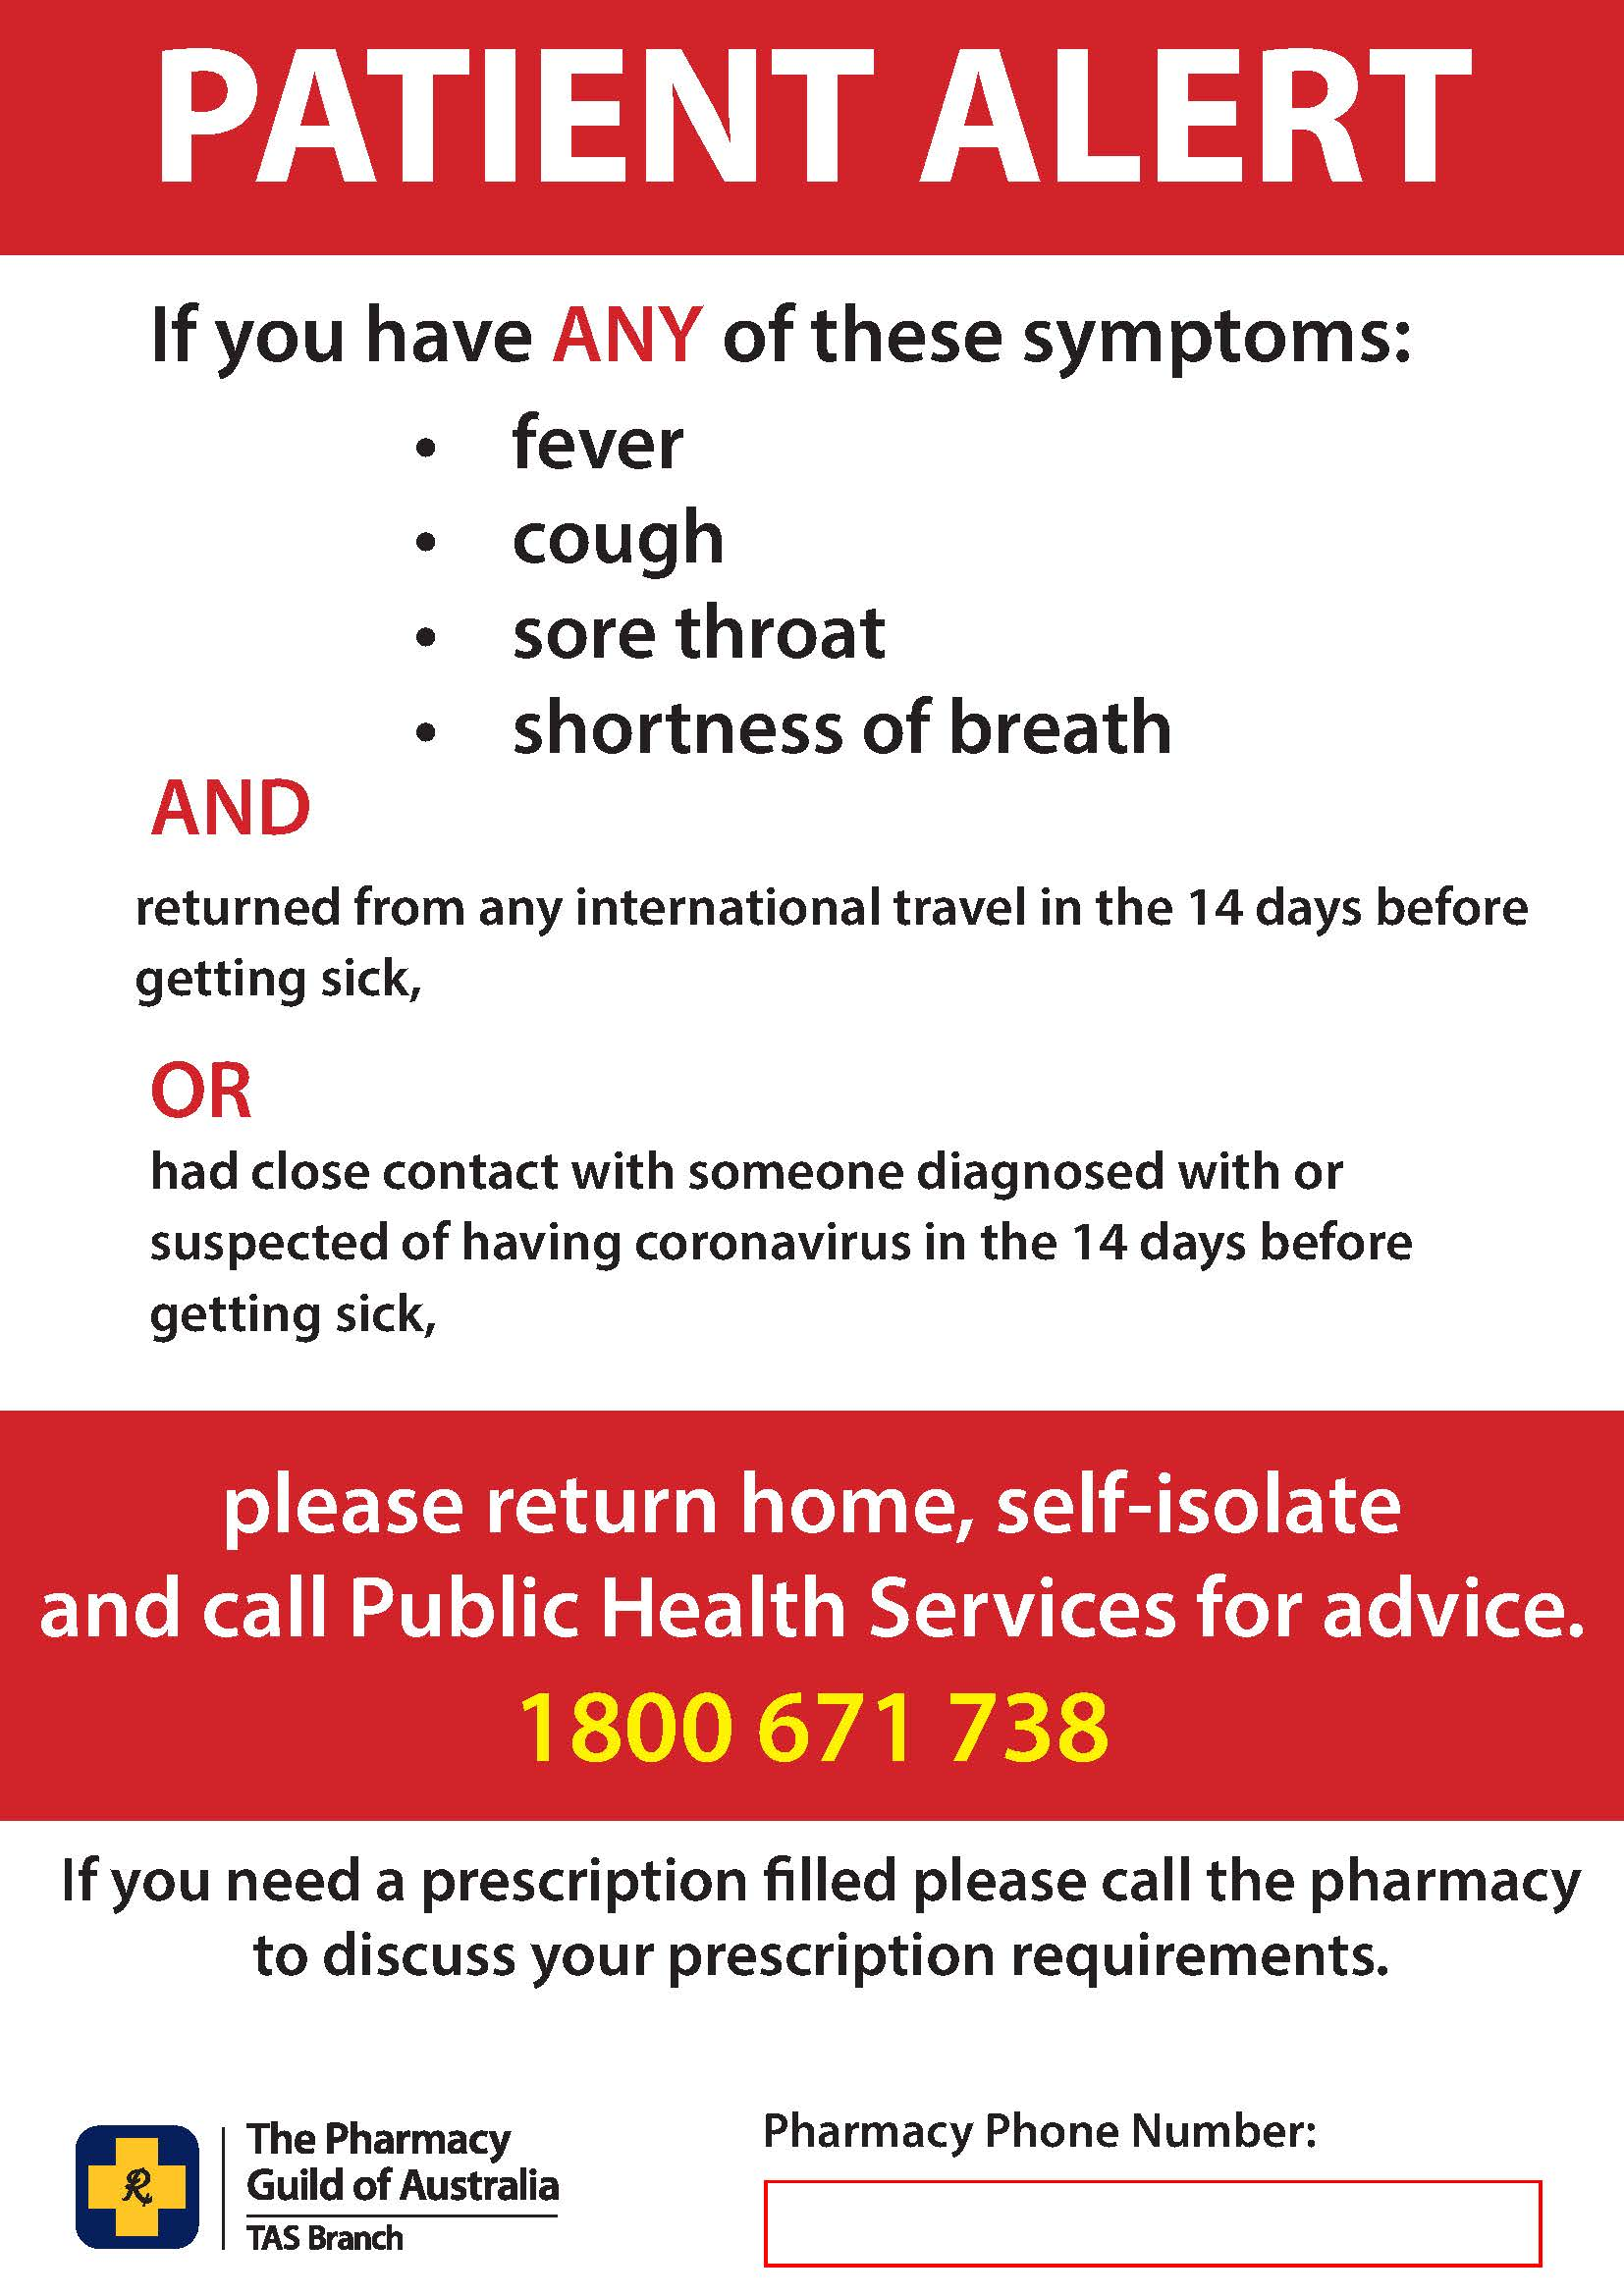 Poster - Patient Alert Poster (with phone number)